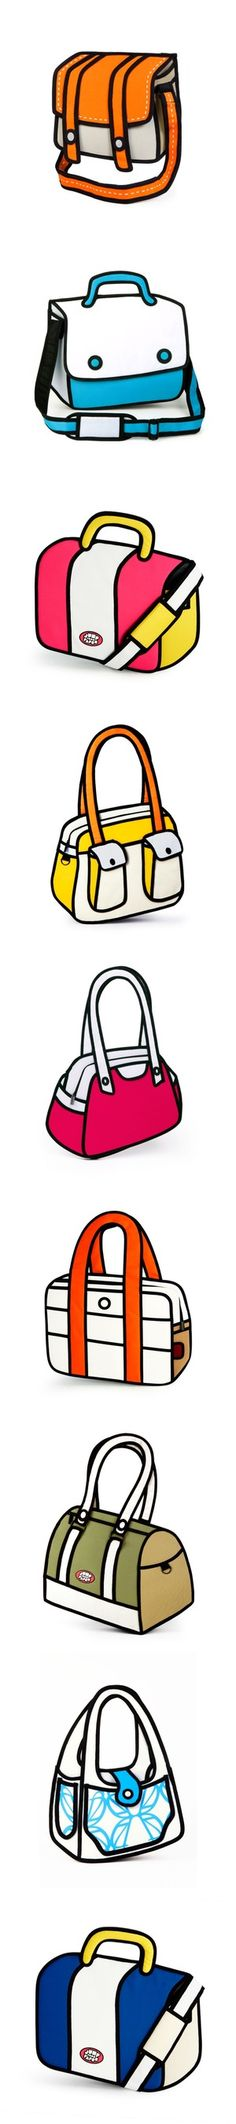 Crazy Bags Look Like Cartoons -- But They're Real!